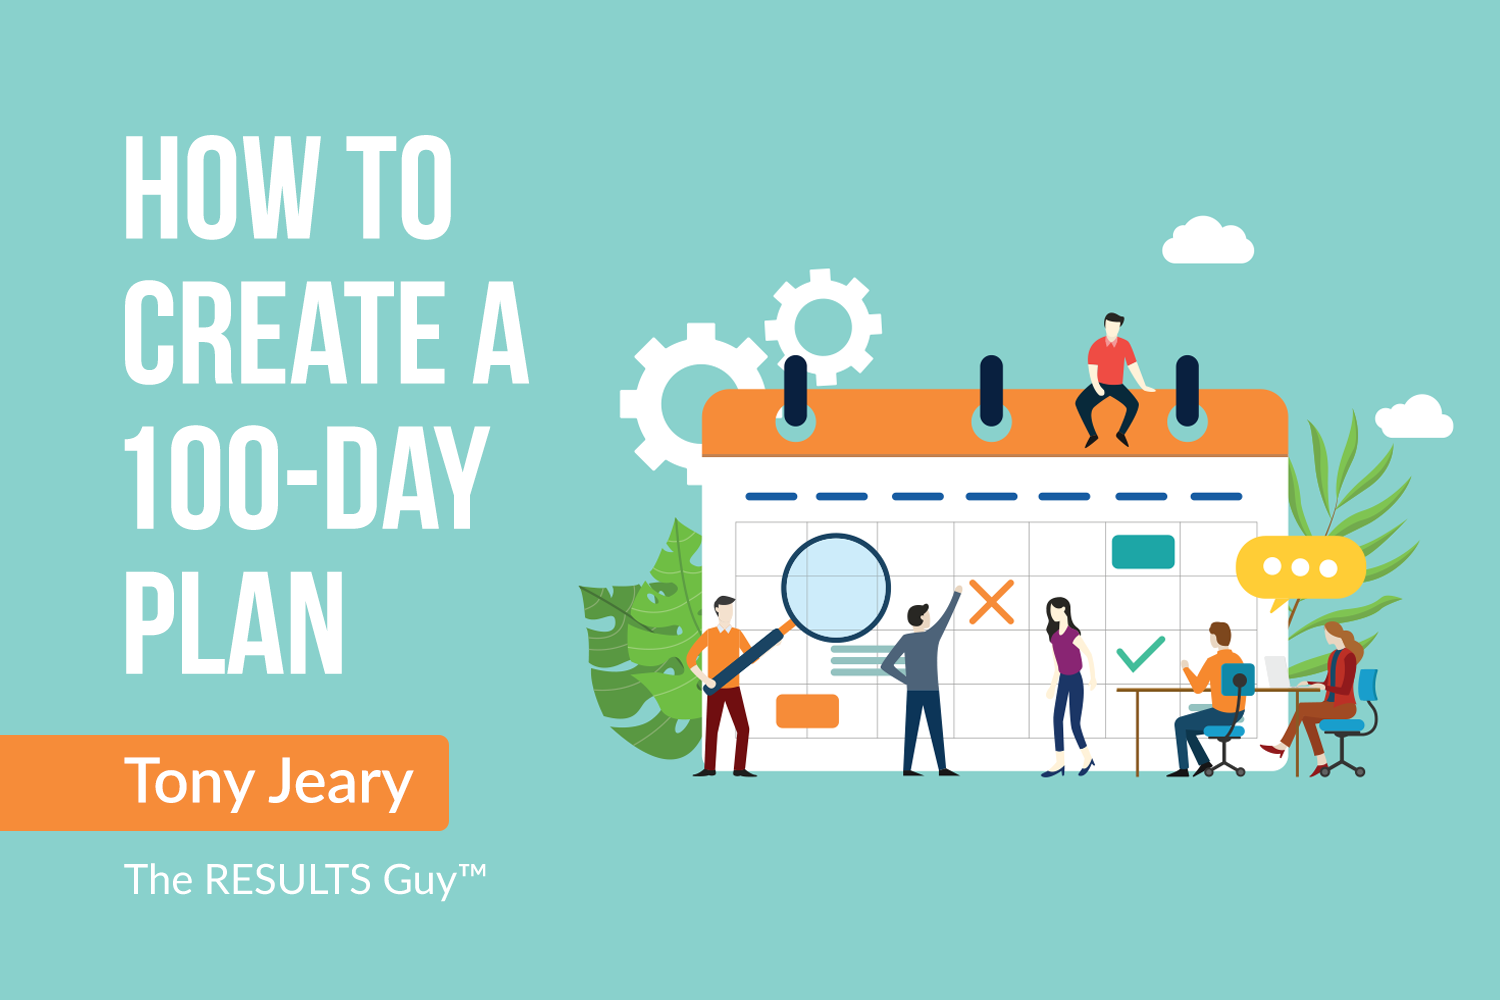 How to Create a 100-Day Plan